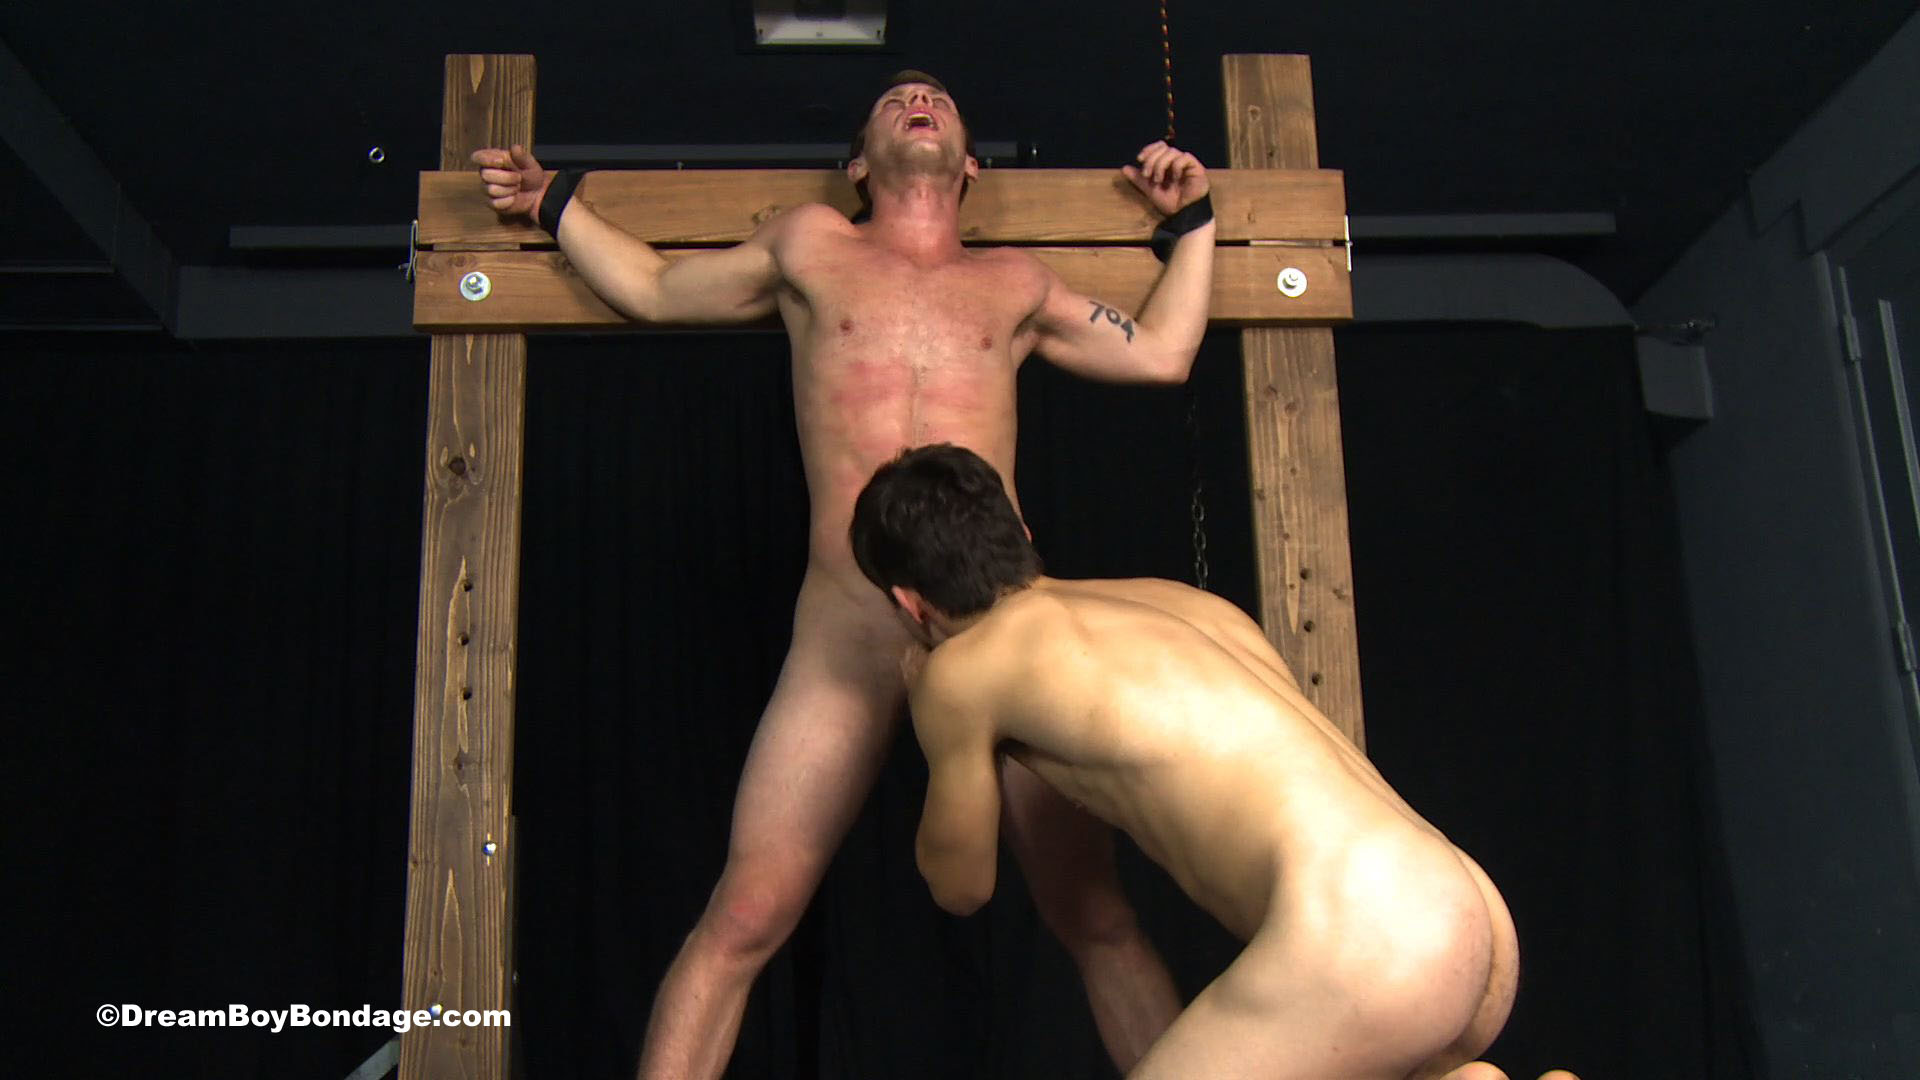 Dream bondage boys